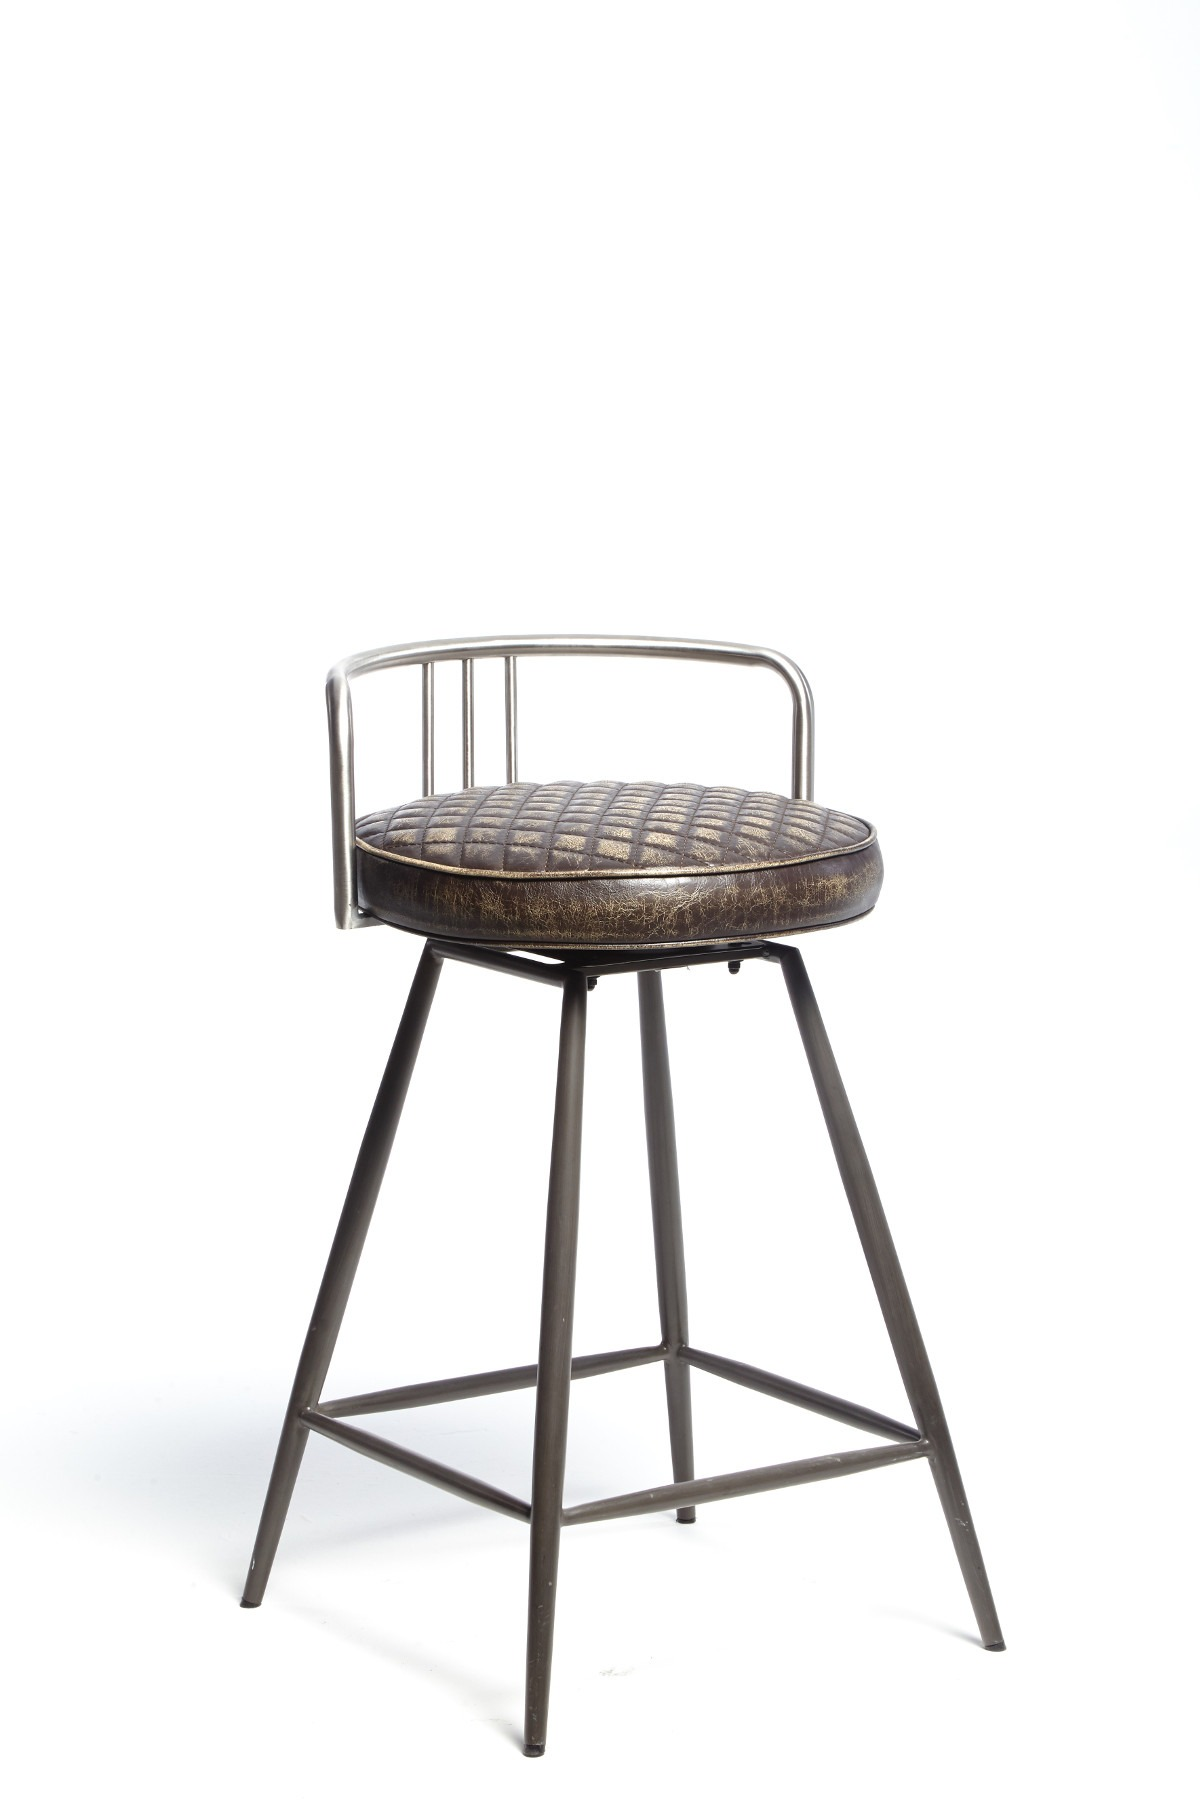 CIARA BAR STOOL - ANGLE DETAIL